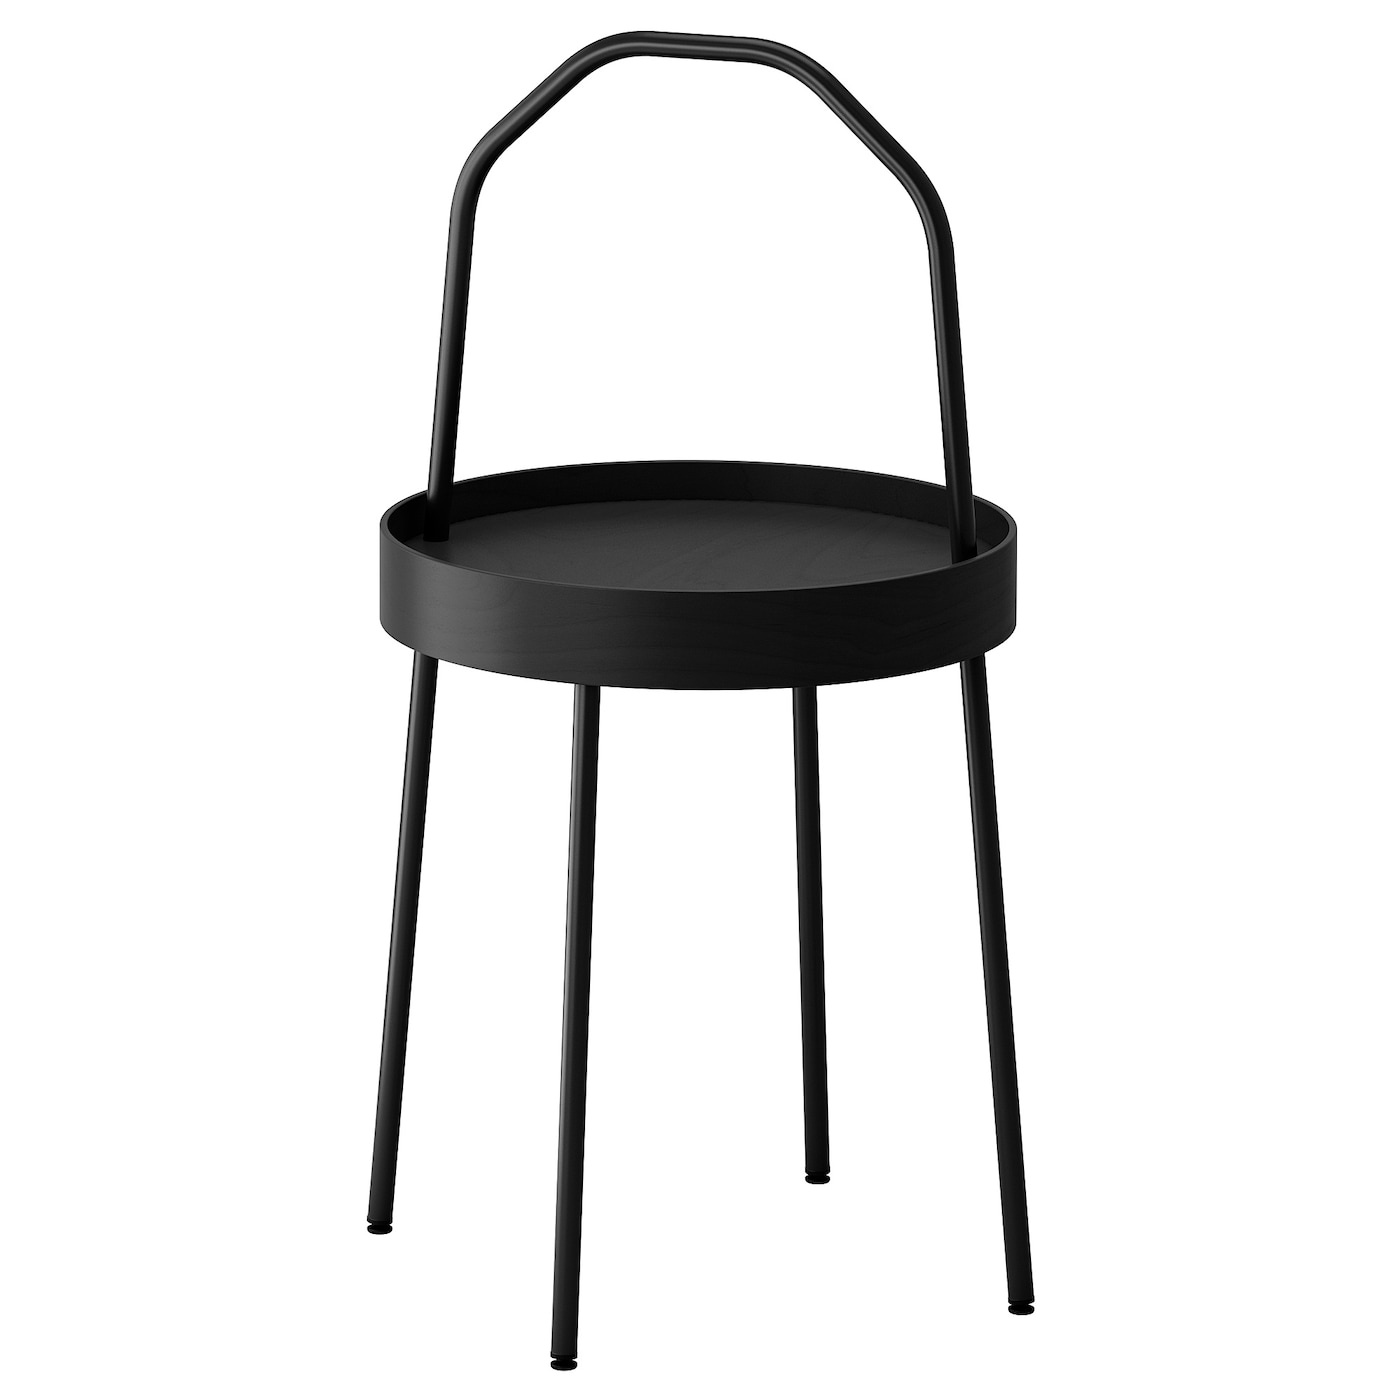 IKEA BURVIK side table The clear-lacquered surface is easy to wipe clean and is stain resistant.